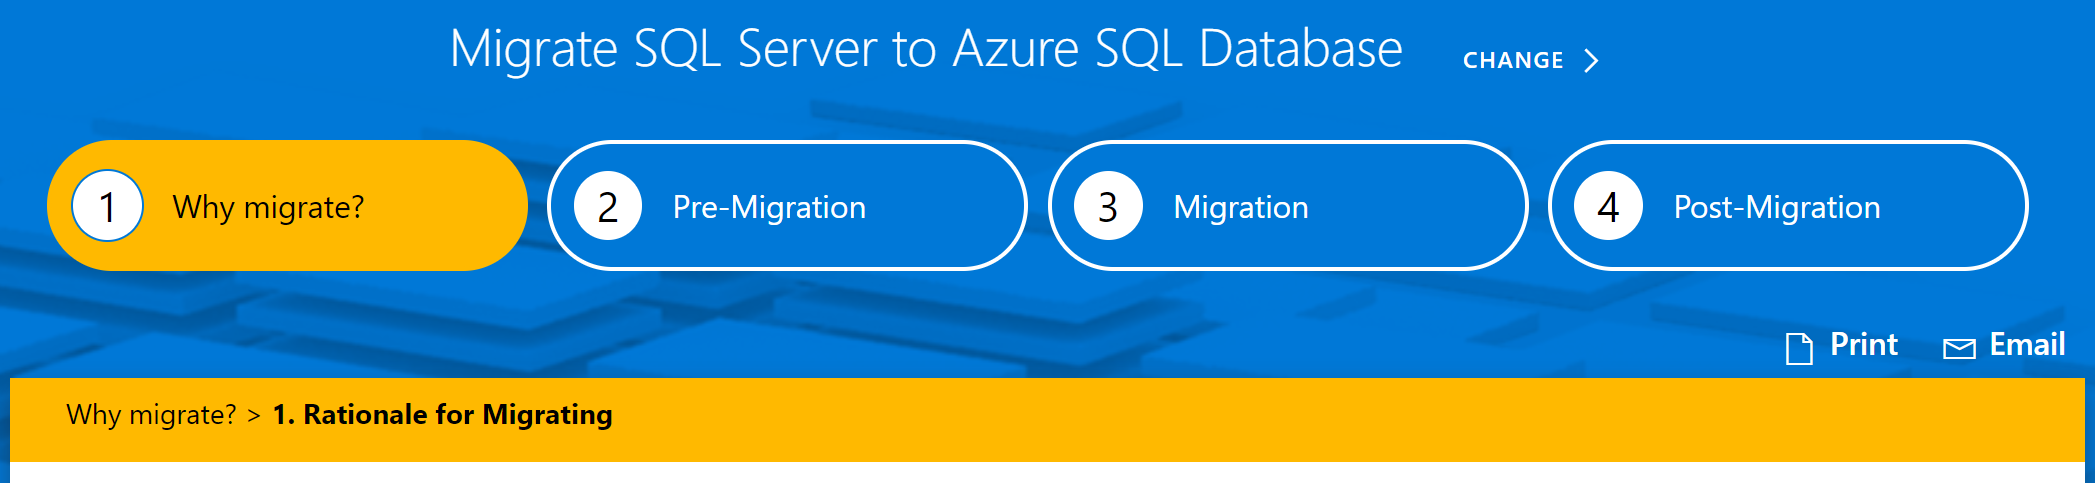 Demystifying Azure Migrations - Part 7 (Assess): Azure Total Cost of